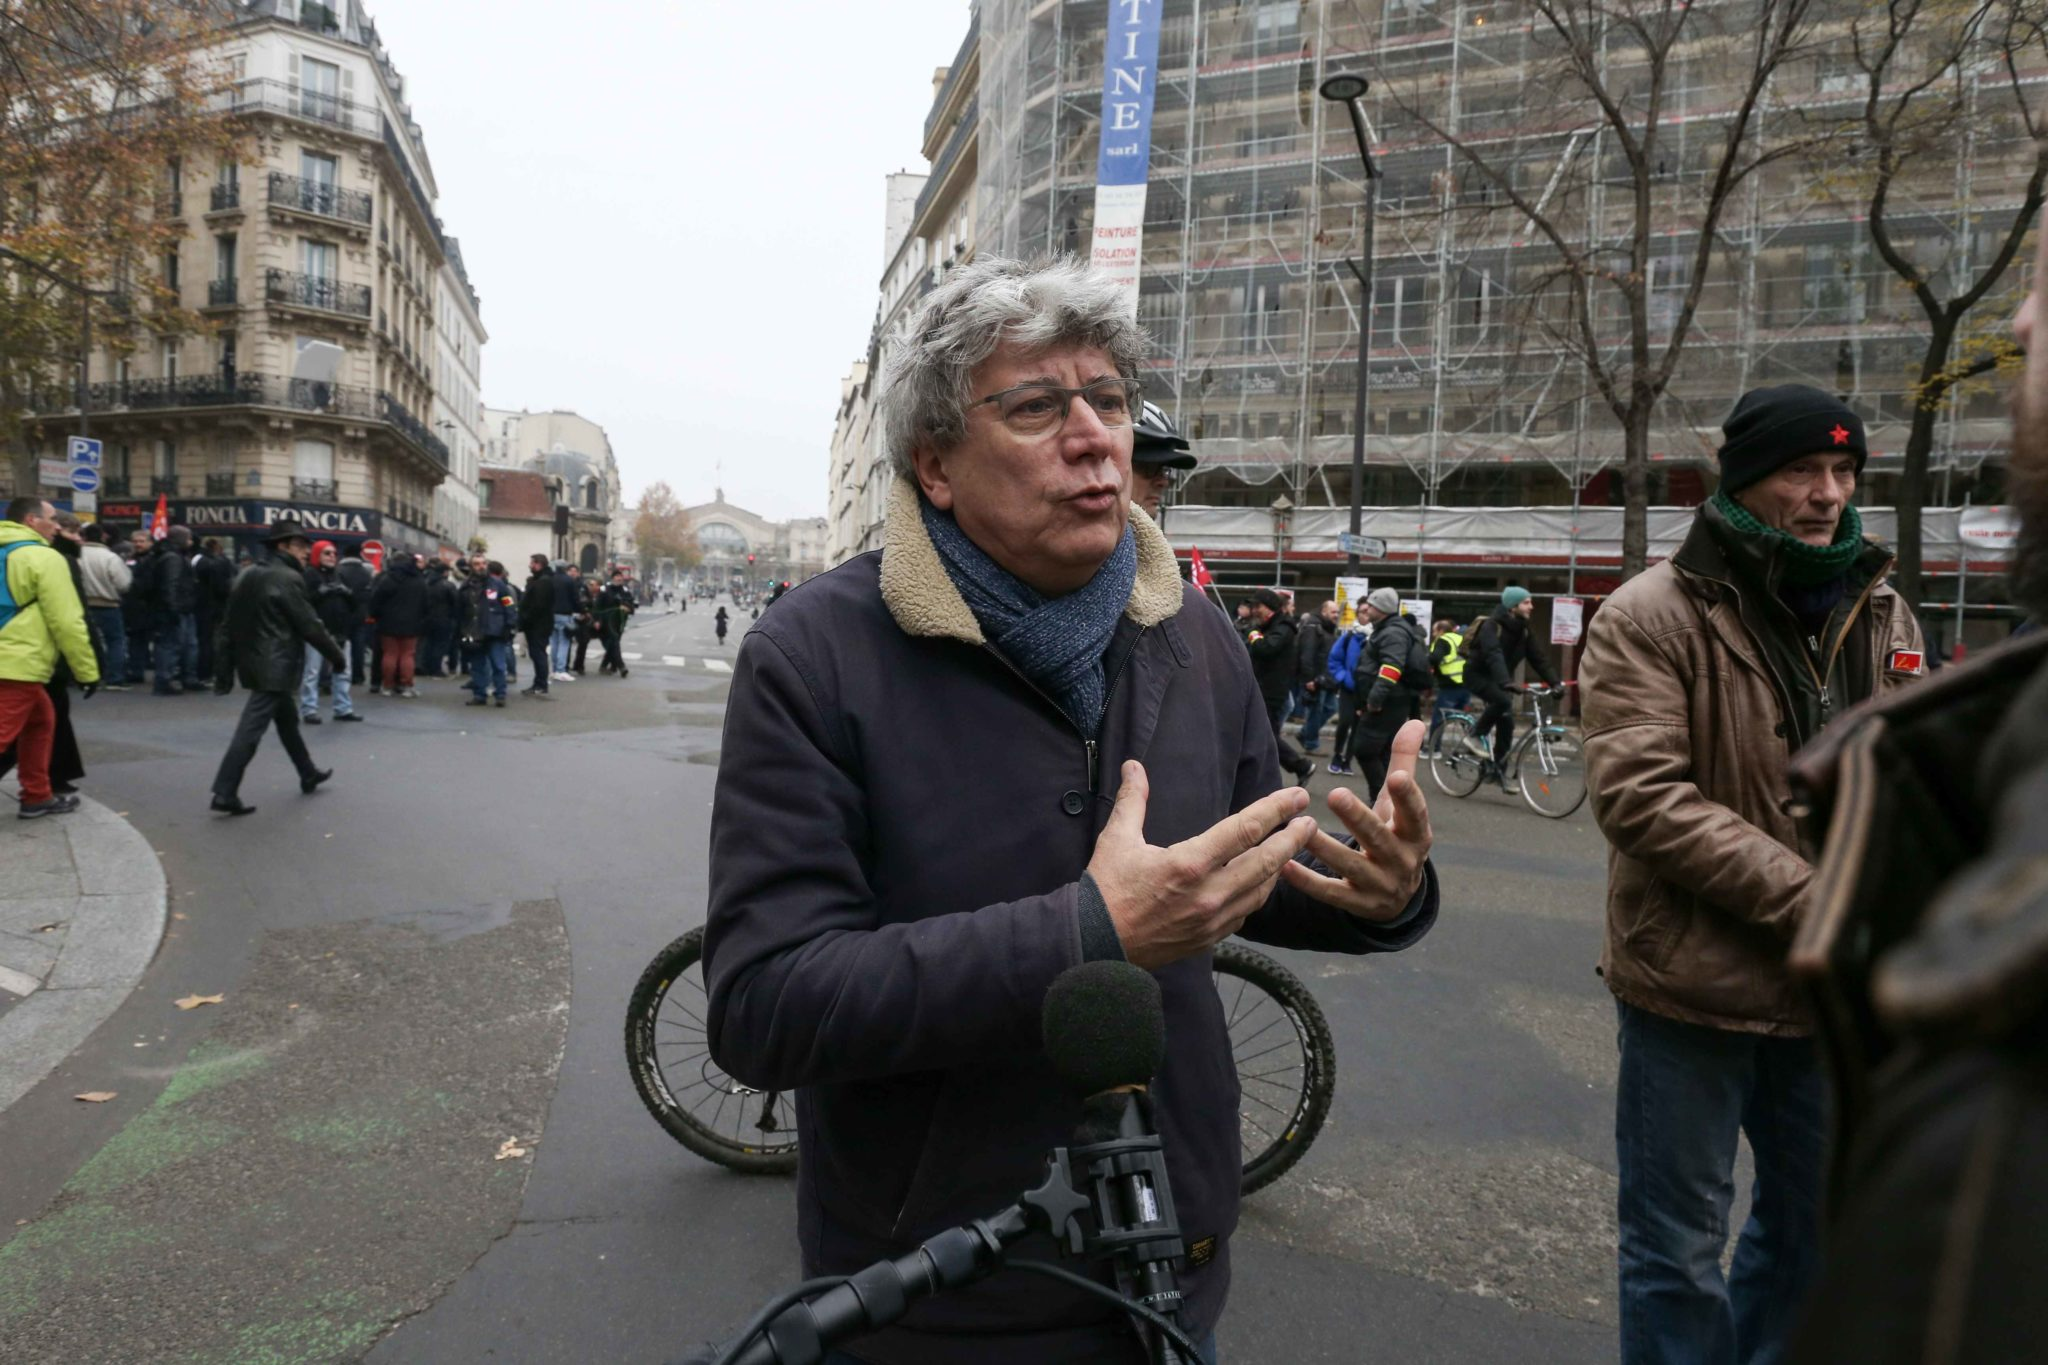 French leftist party La France Insoumise (LFI) deputy Eric Coquerel talks with the press during a demontration to protest against the pension overhauls, in Paris, on December 5, 2019 as part of a national general strike. Trains cancelled, schools closed: F